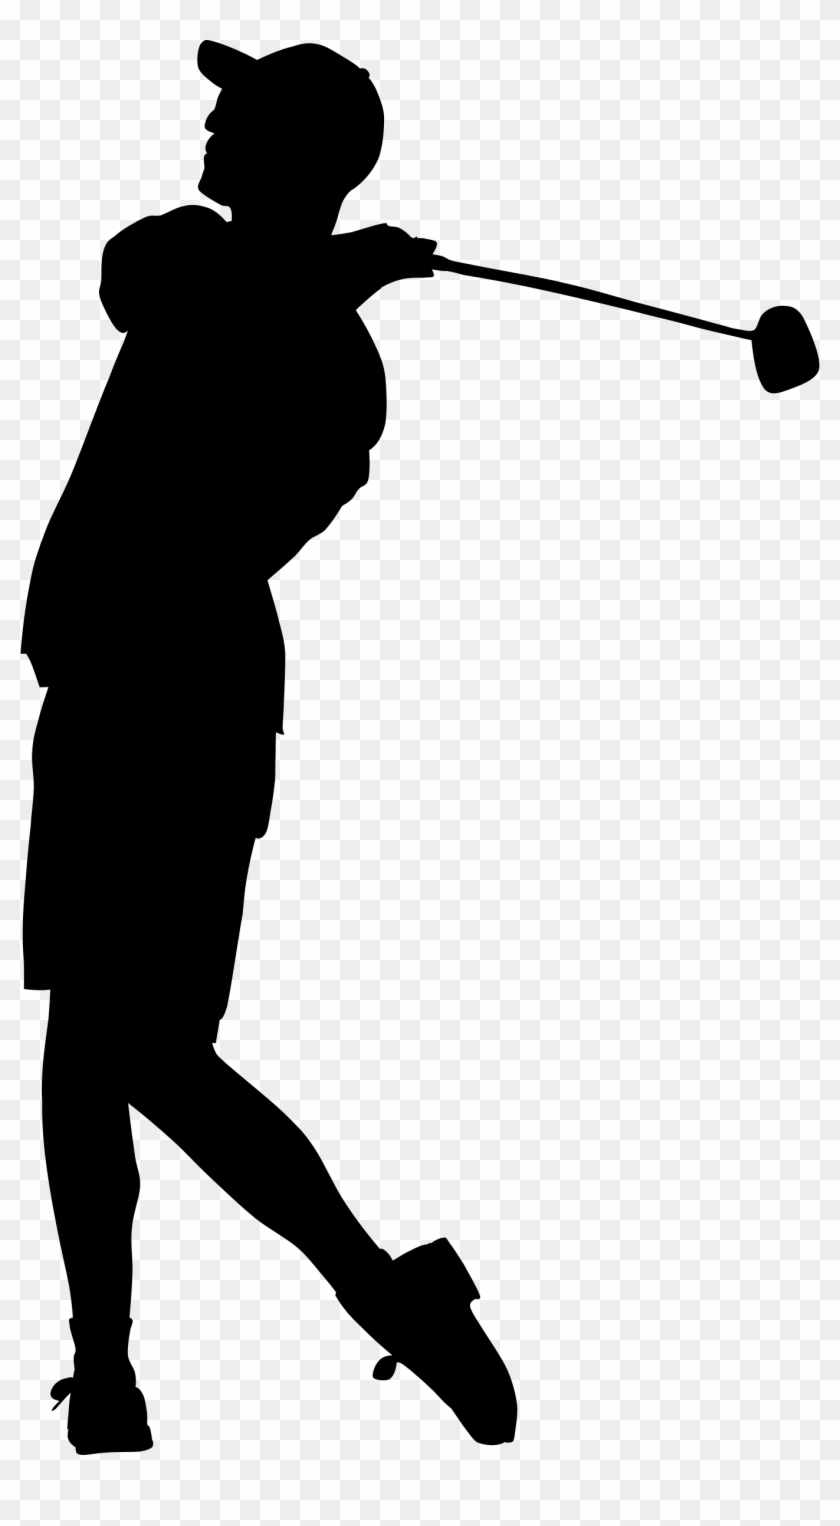 Silhouette Clipart Golf Silhouette Of A Golfer Free Transparent